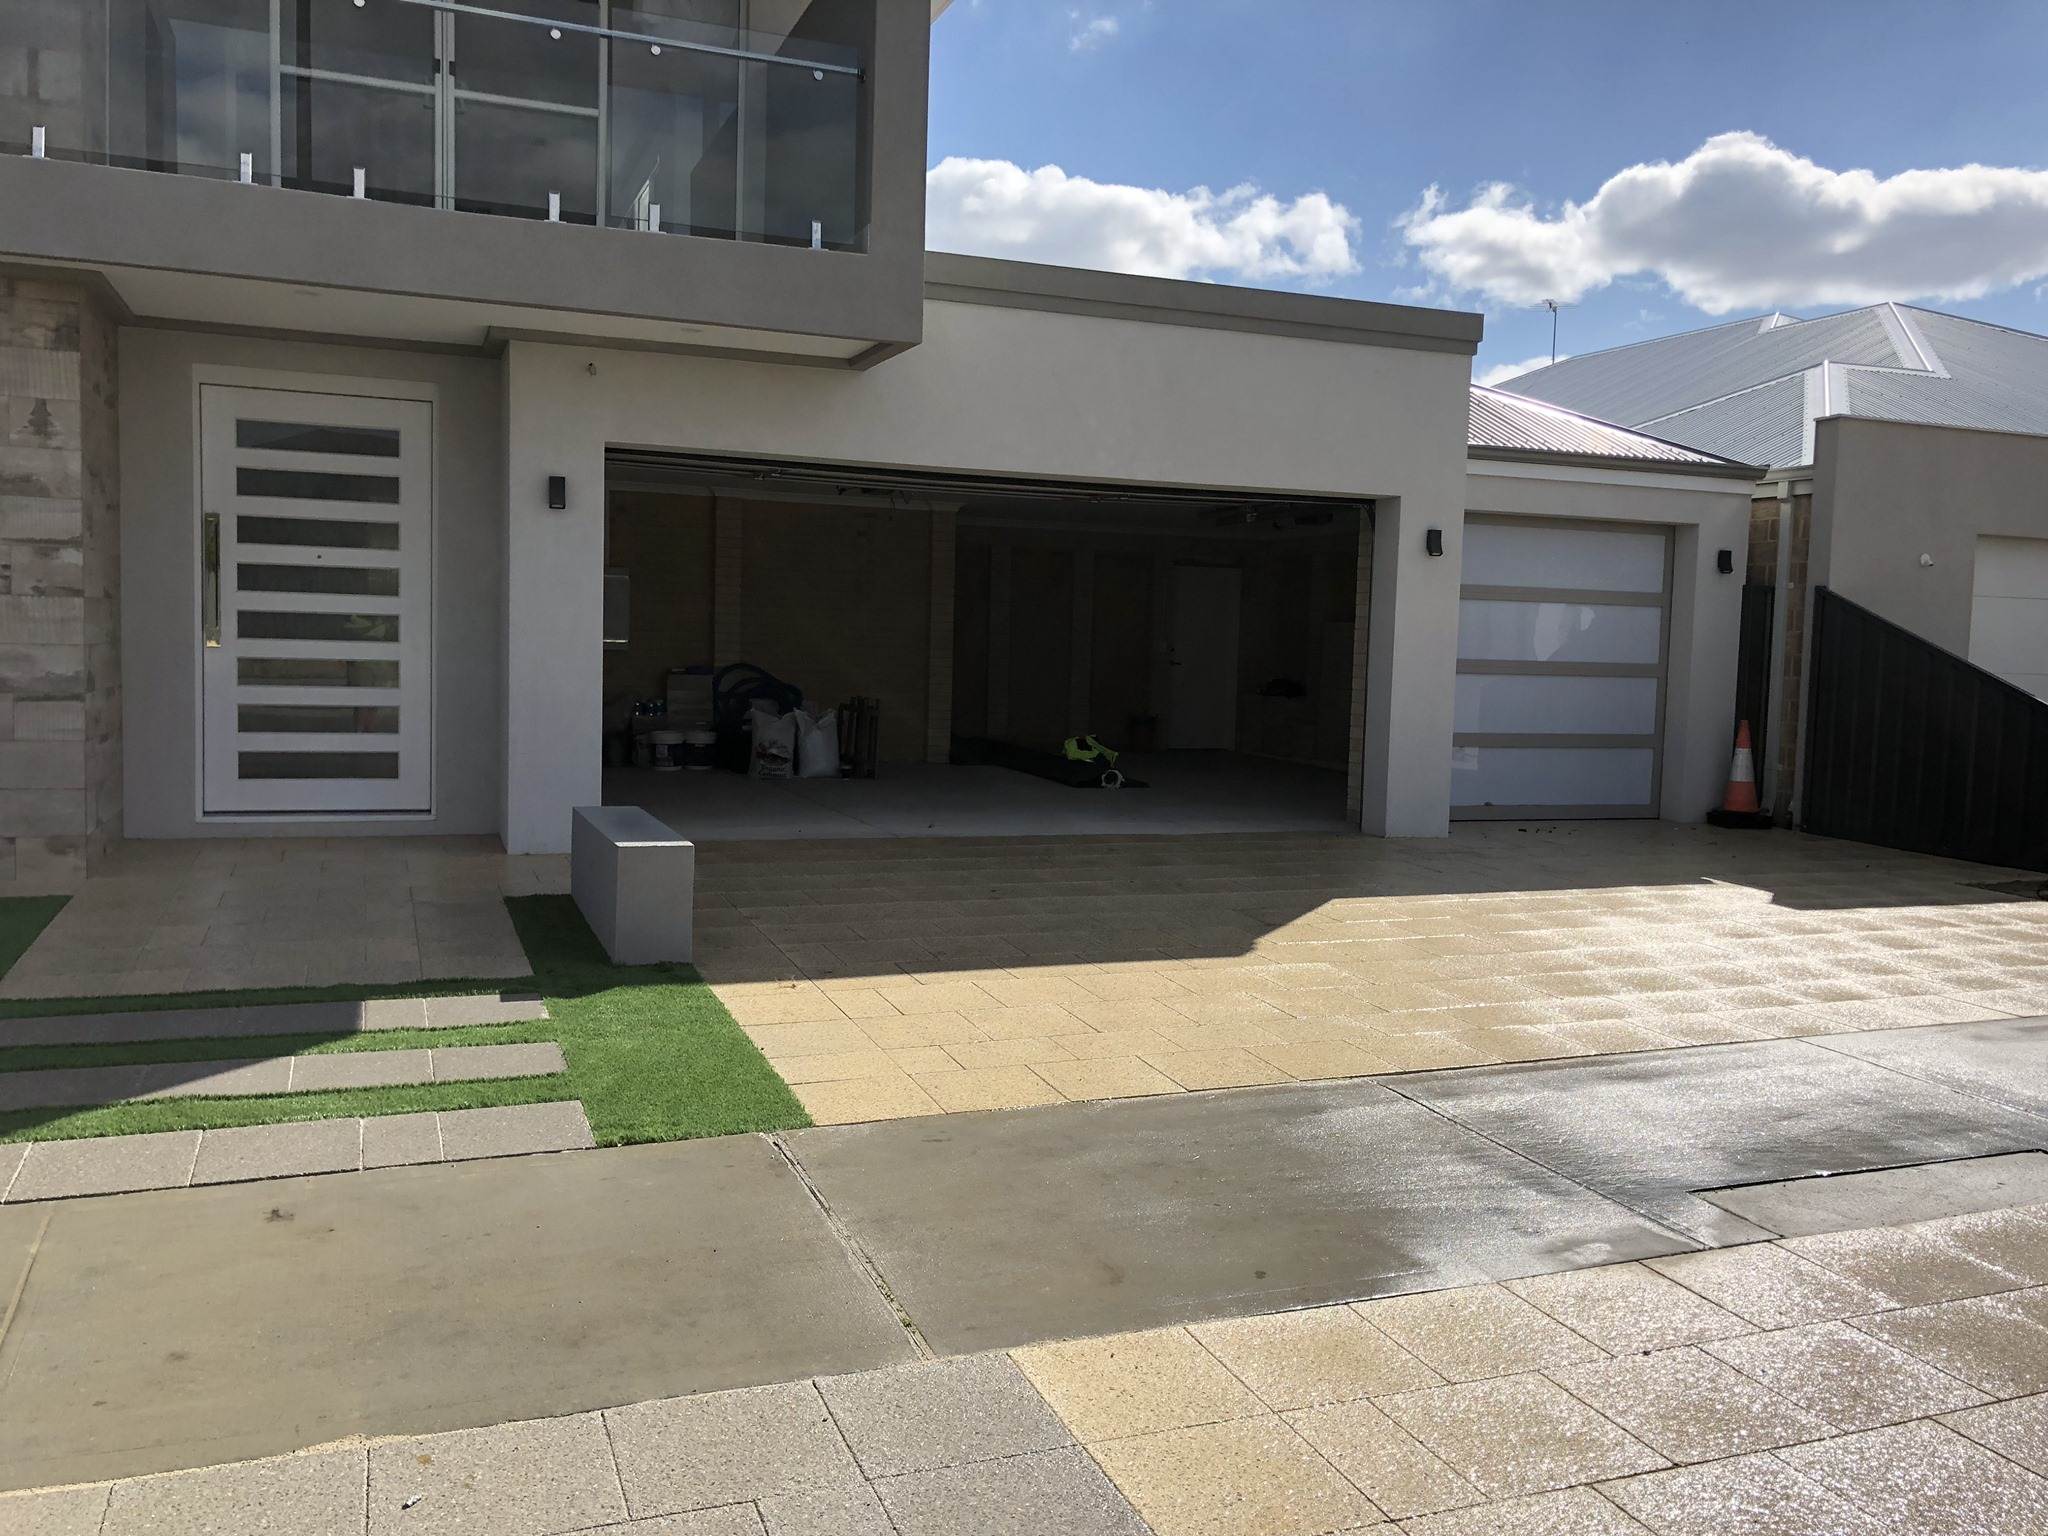 Driveway Paving Design in Canberra